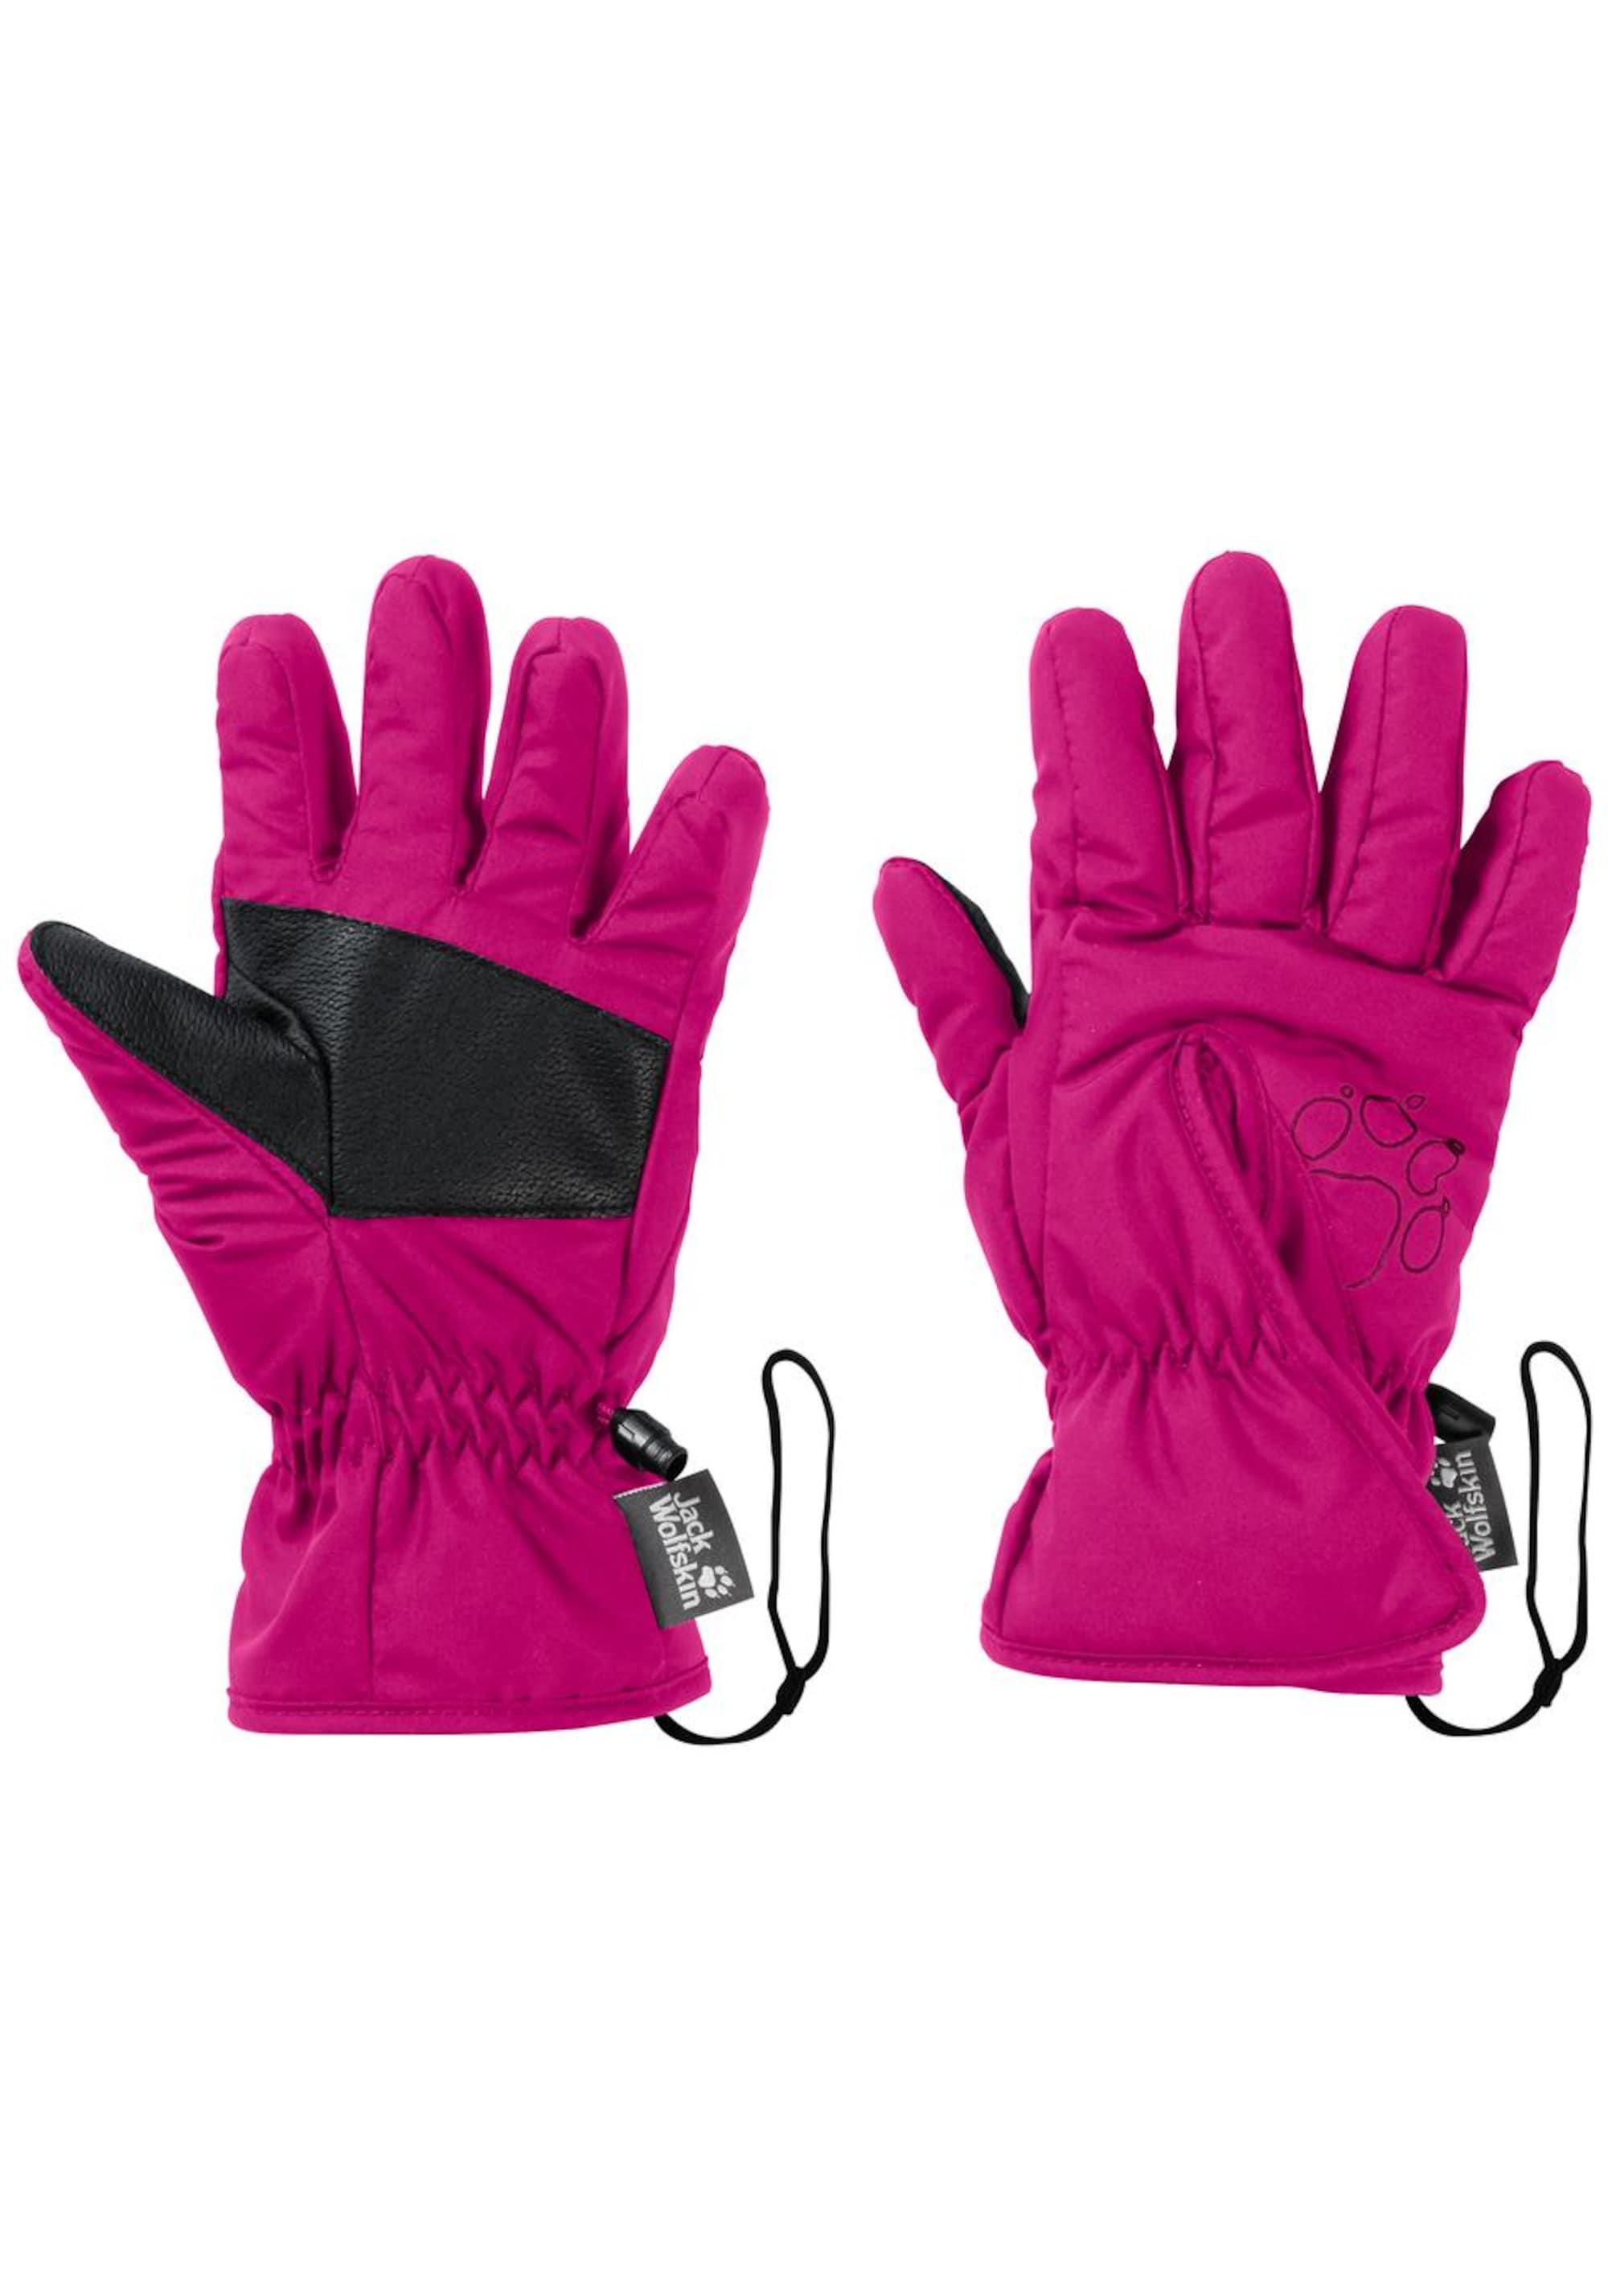 Handschuhe ´EASY ENTRY GLOVE KIDS´